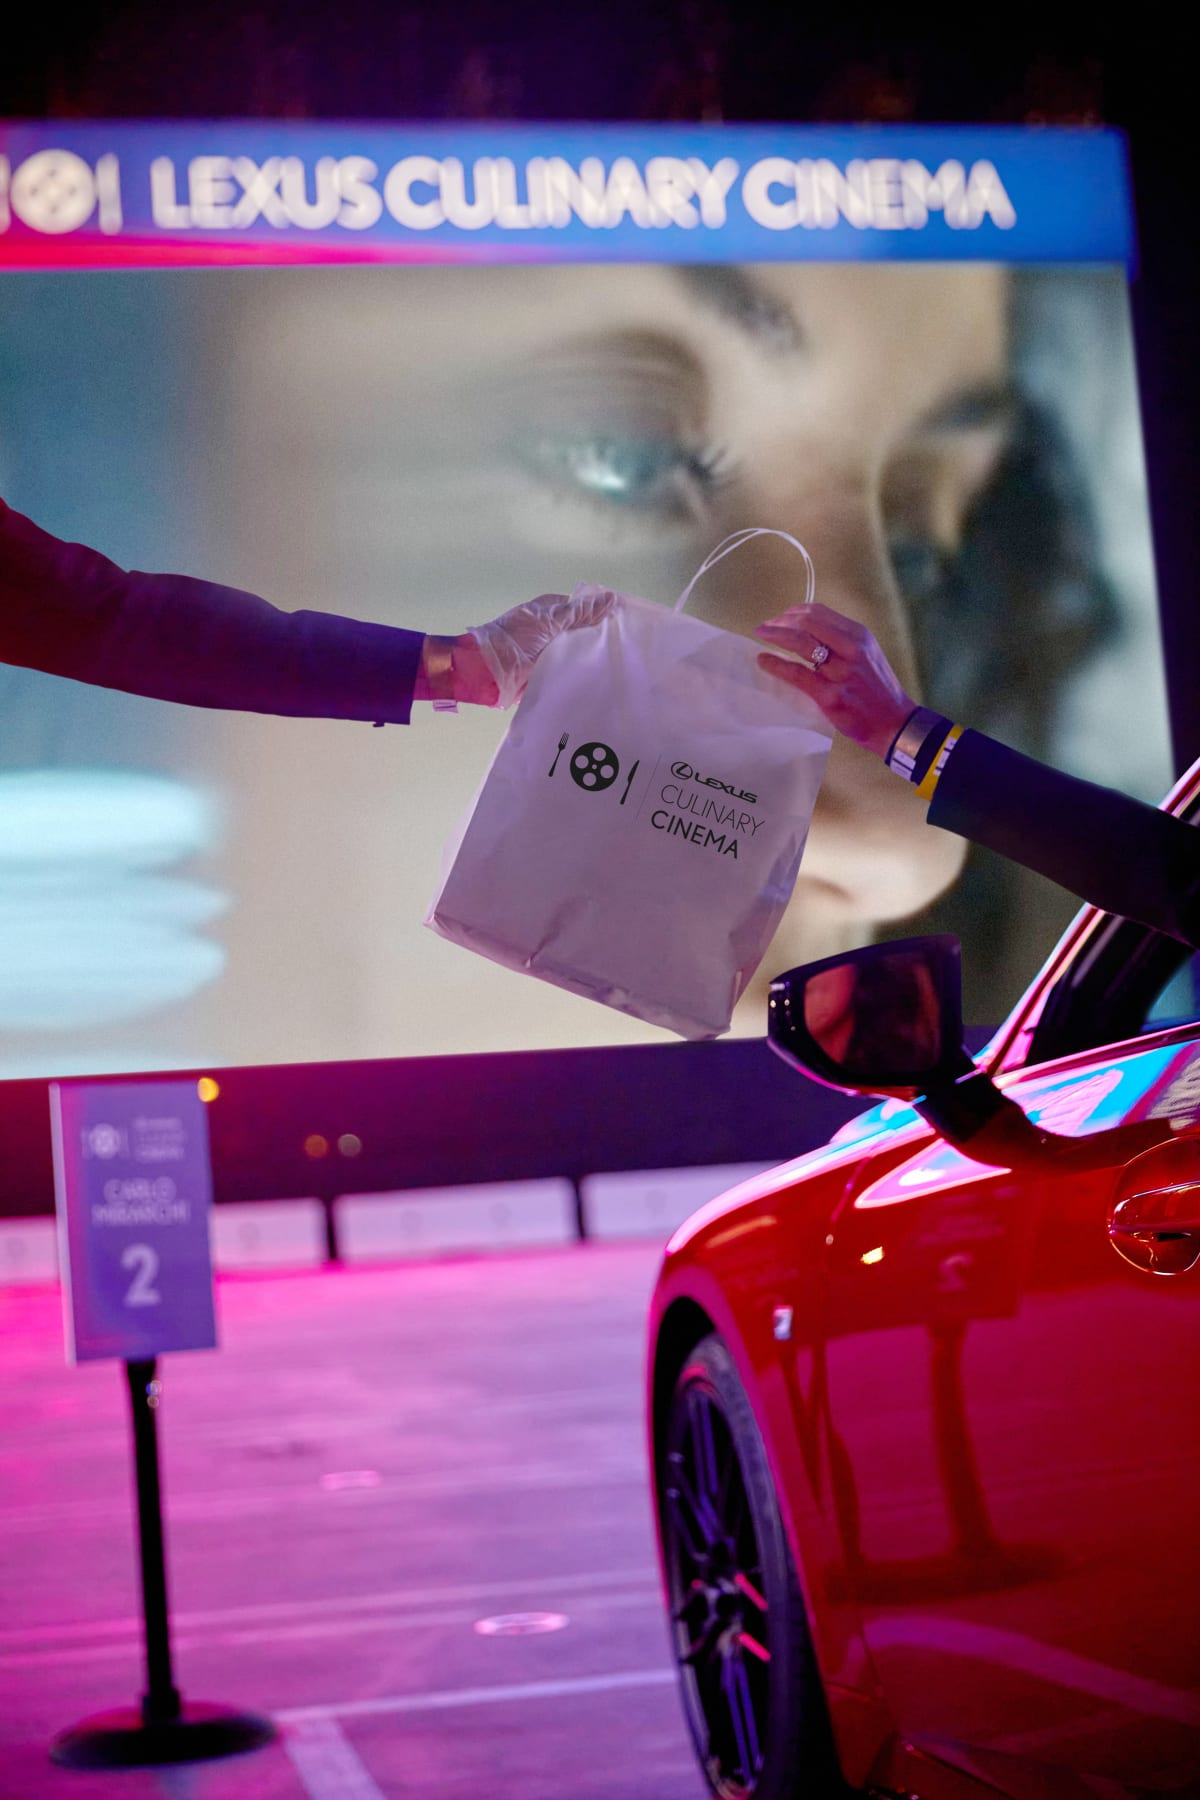 The Lexus Culinary Cinema Event sold out each of its 3 nights, attracting over 100 cars